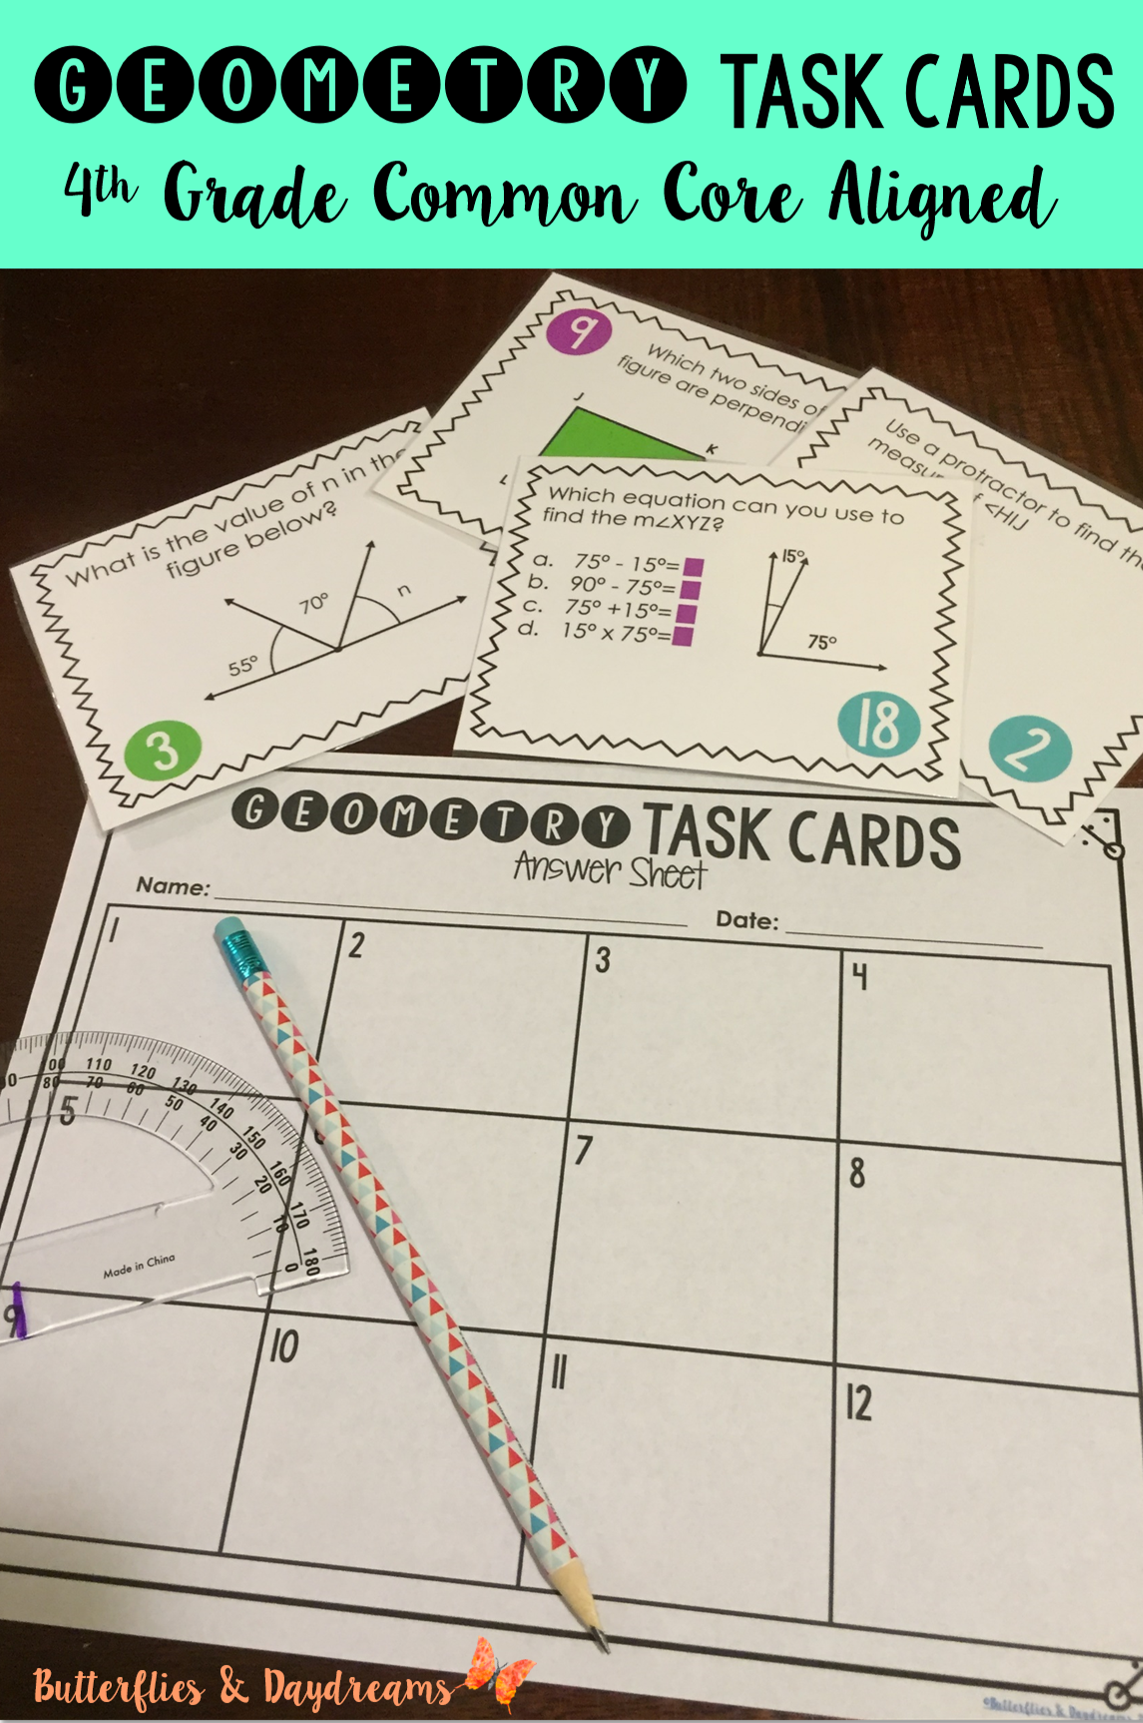 Geometry Task Cards For Measuring Angles Identifying Lines Identifying Lines And Angles In 2d Shapes 4th Gr Geometry Task Cards Task Cards Math Lesson Plans [ 1723 x 1143 Pixel ]